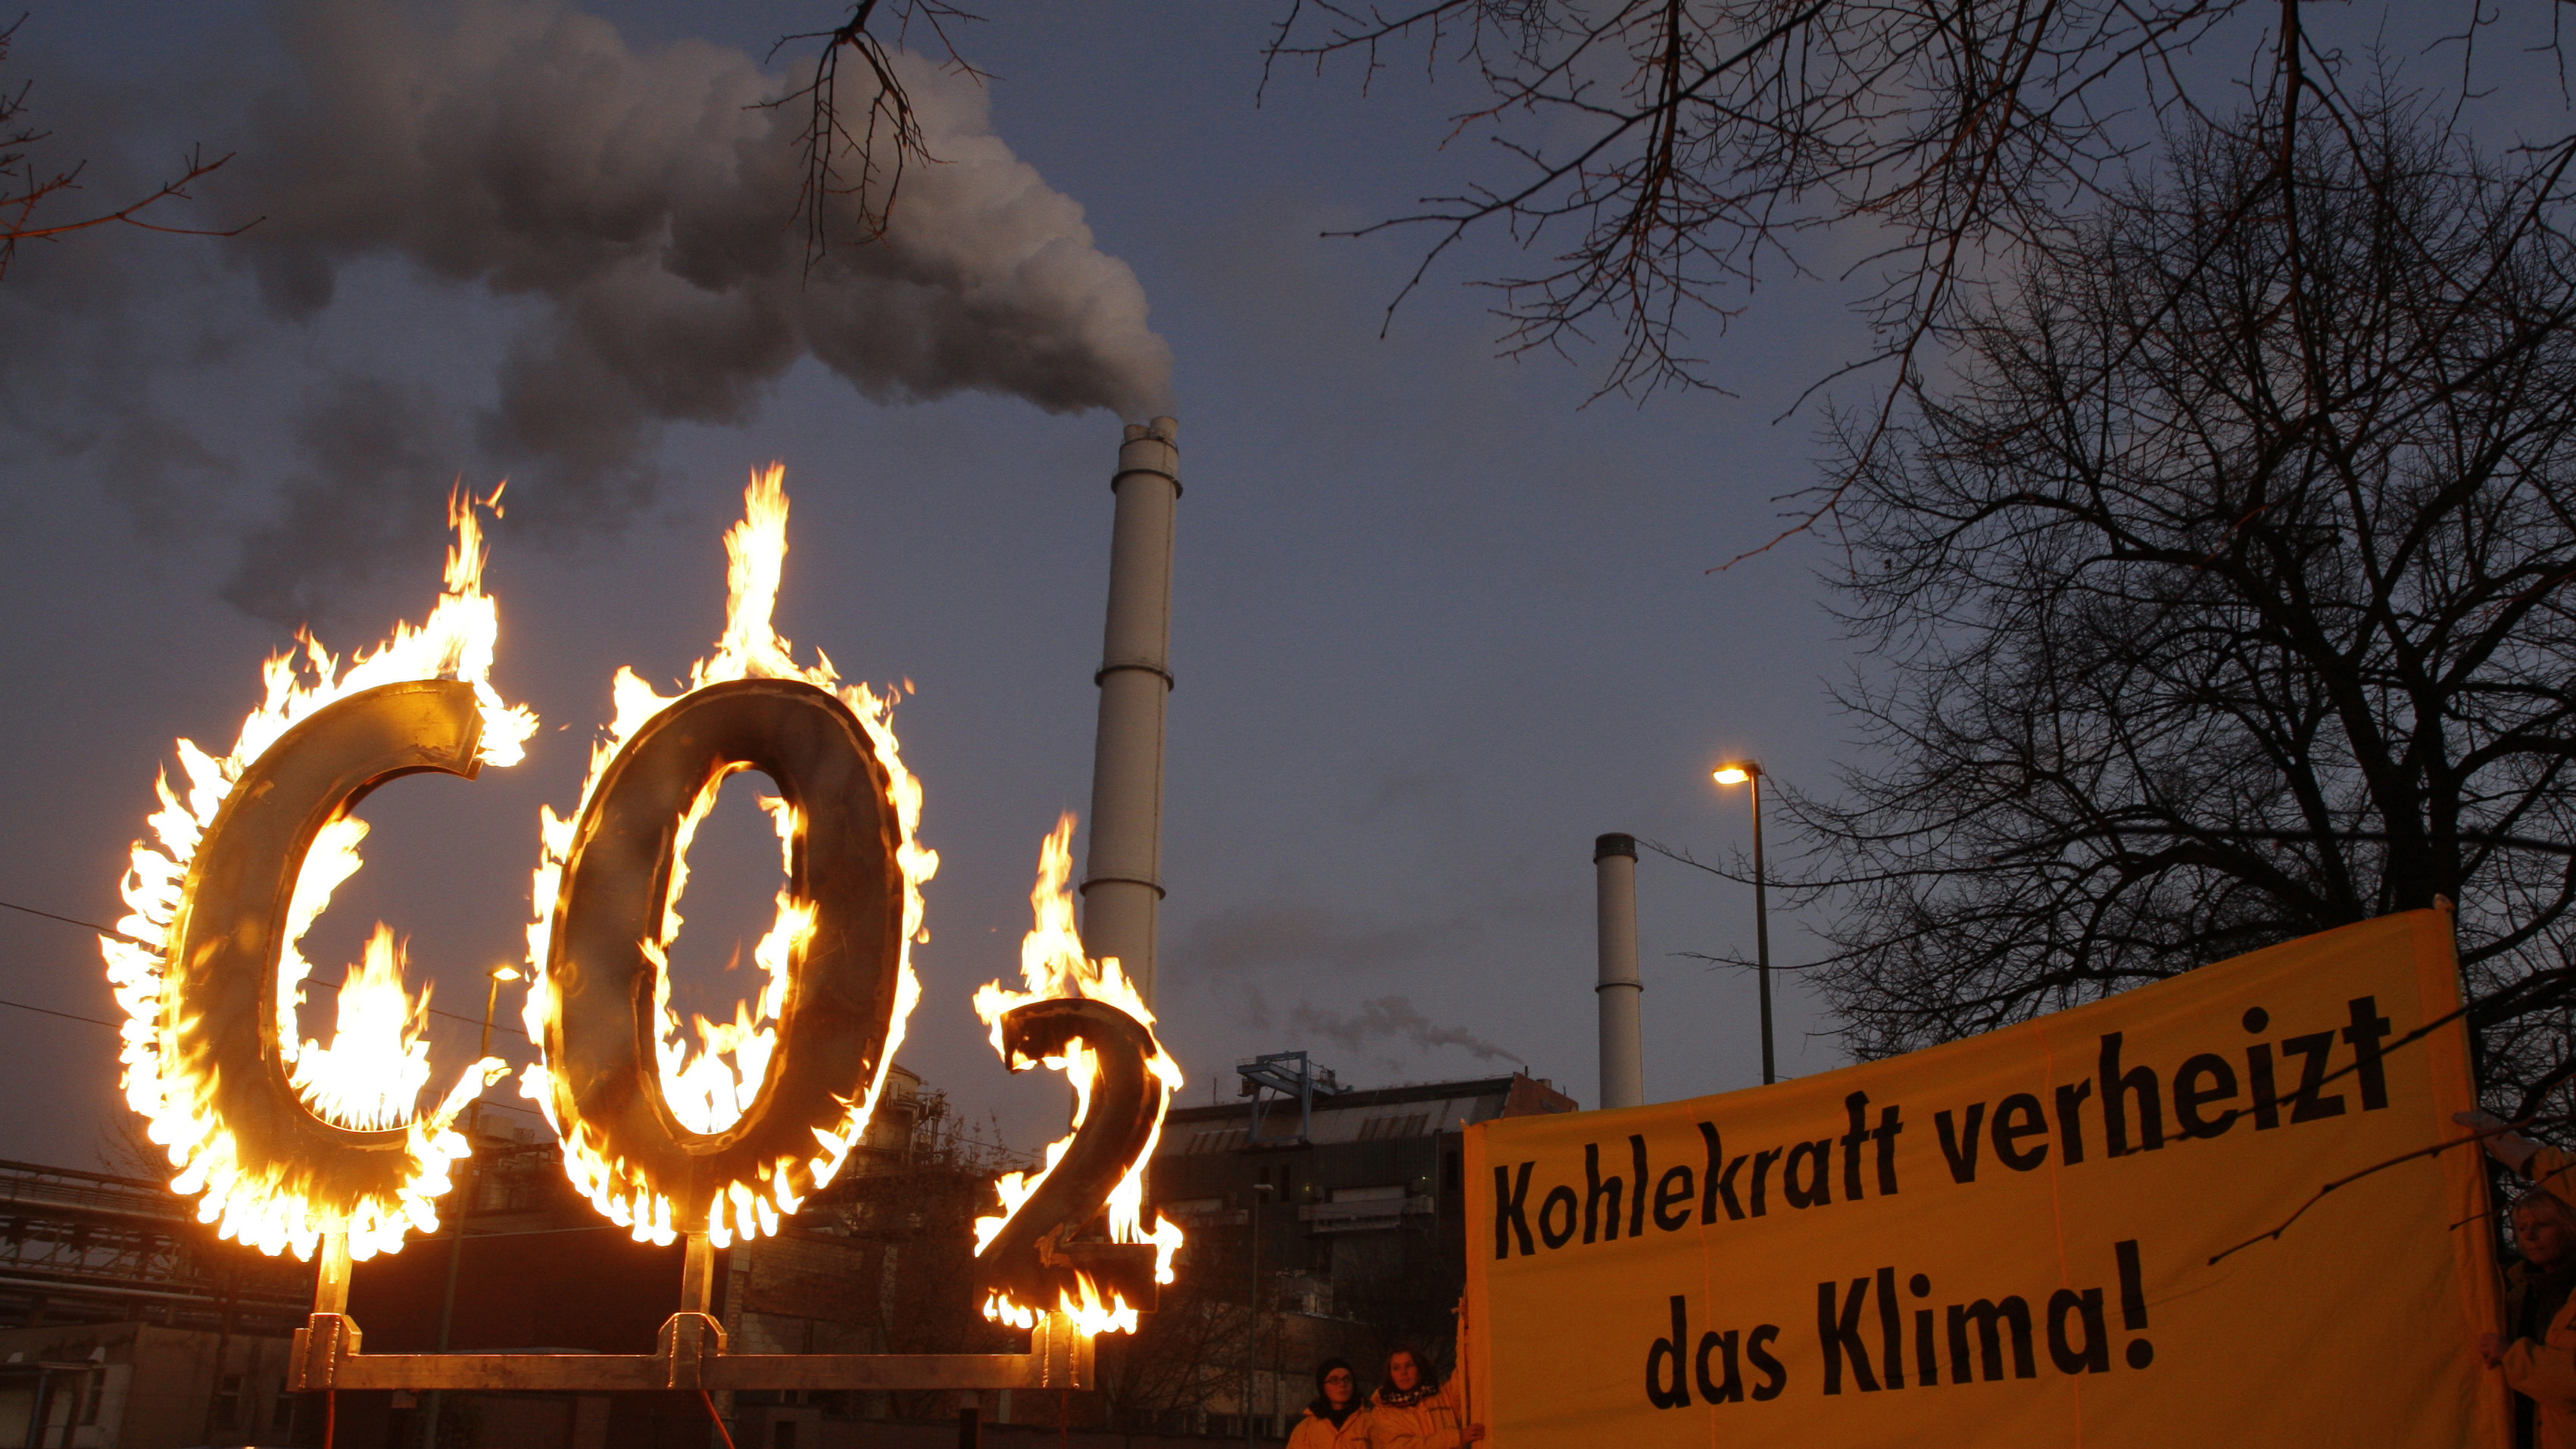 German activists of the environmental organisation Greenpeace illuminate the letters CO2 in front of the Klingenberg coal-fired power plant in Berlin November 13, 2008. The text on the banner reads: 'Coal energy burns the climate.'   REUTERS/Johannes Eisele (GERMANY) - BM2E4BD1CO501